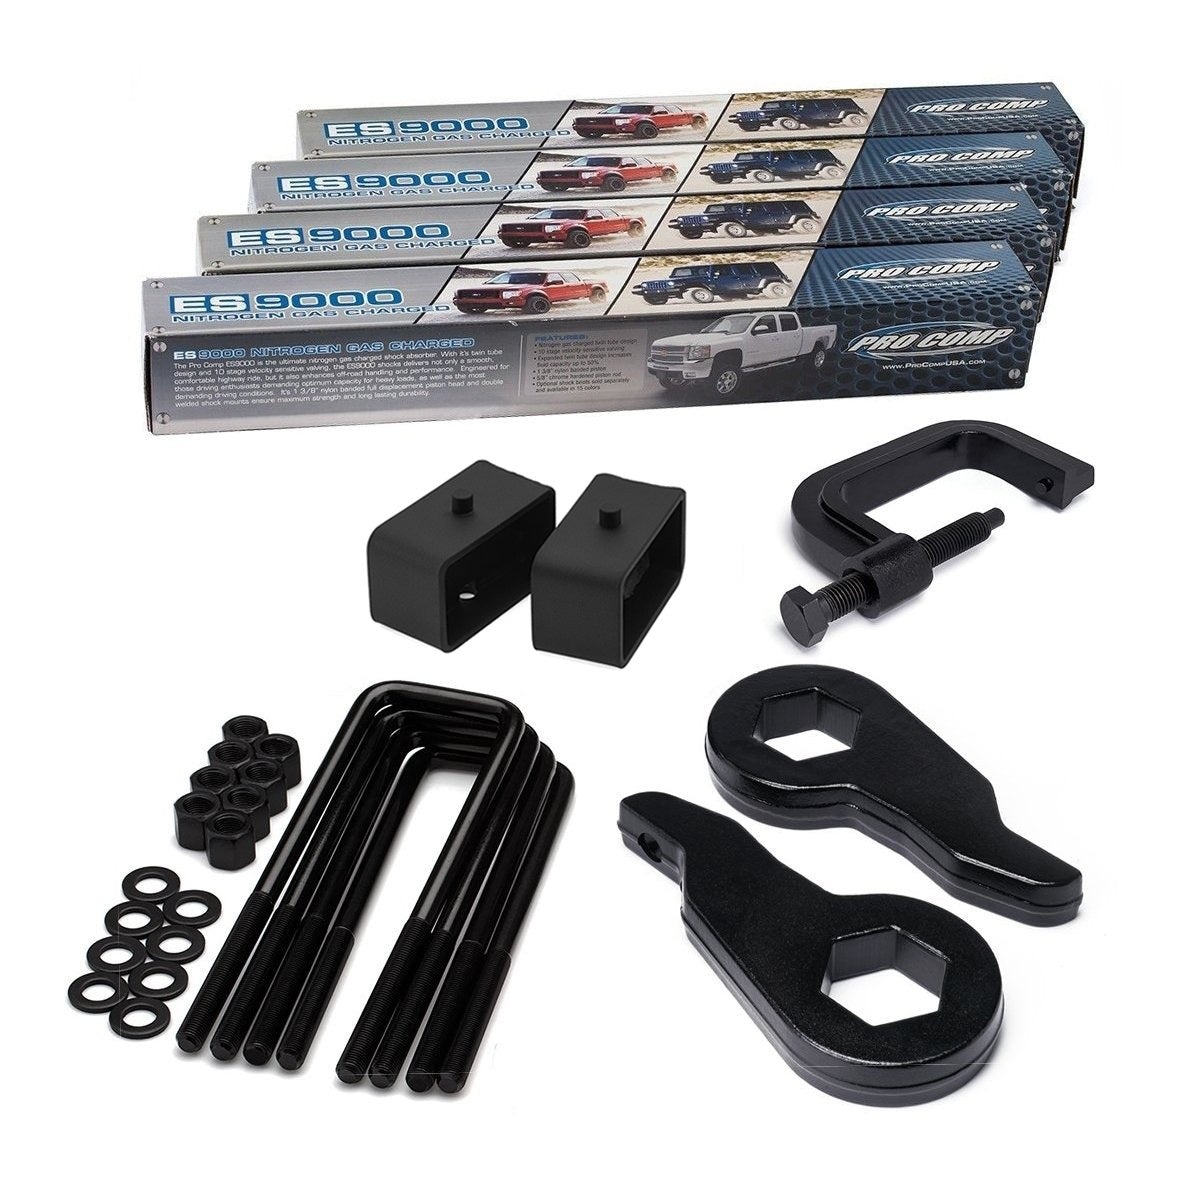 2001-2007 GMC Sierra 1500 HD Full Lift Kit with Extended Shocks and Torsion Key Unloading/Removal Tool